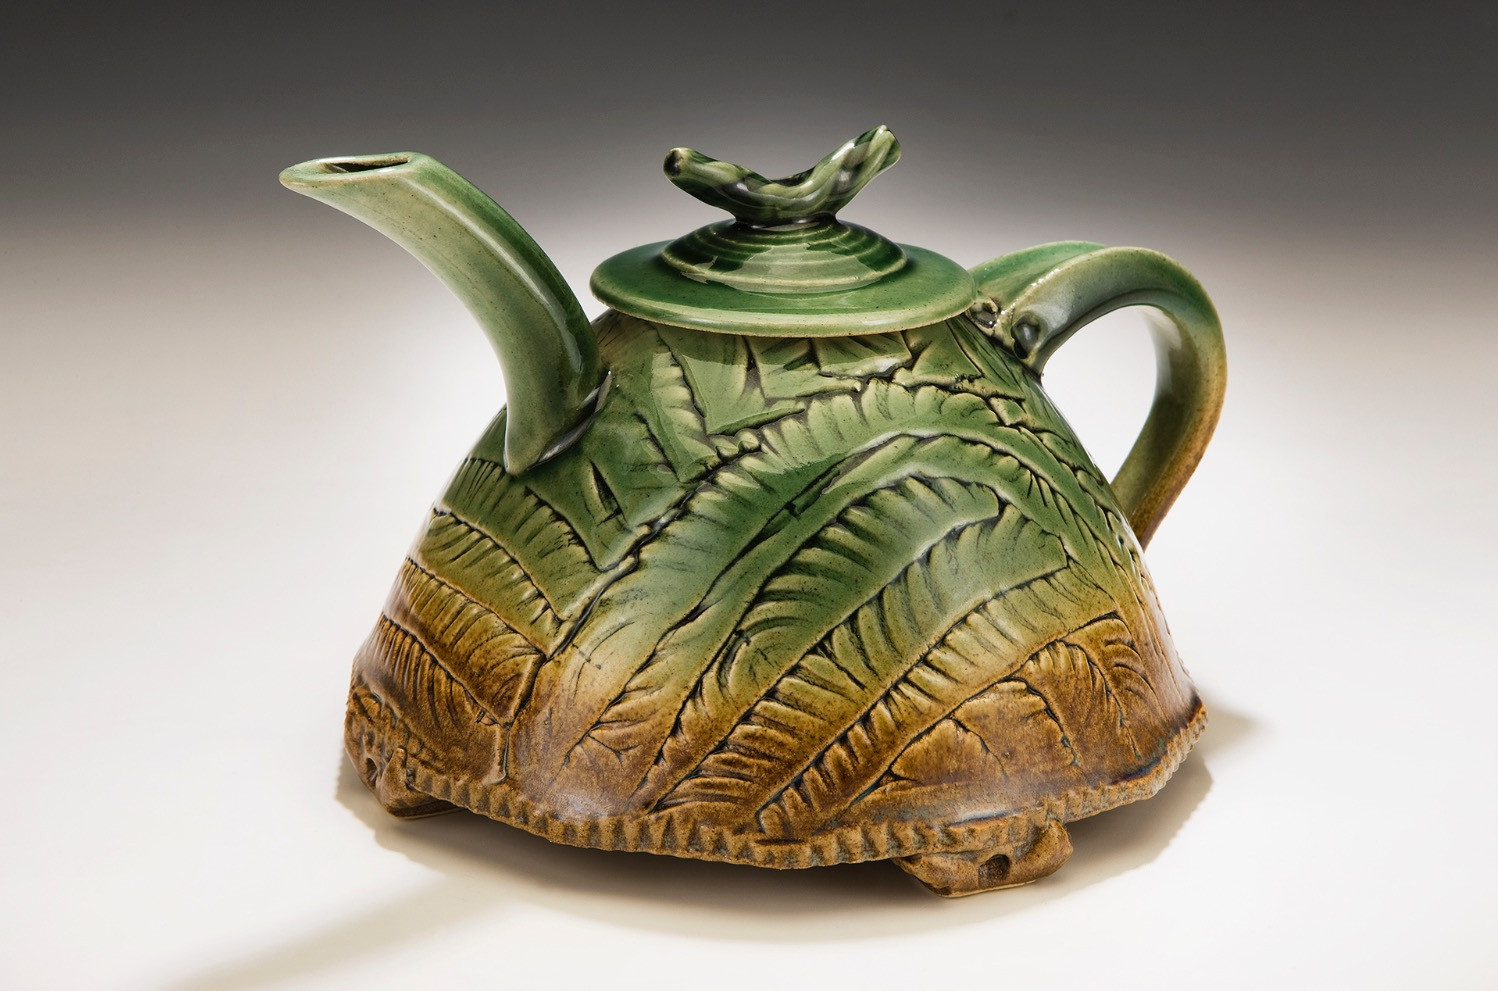 Green and Iron Teapot